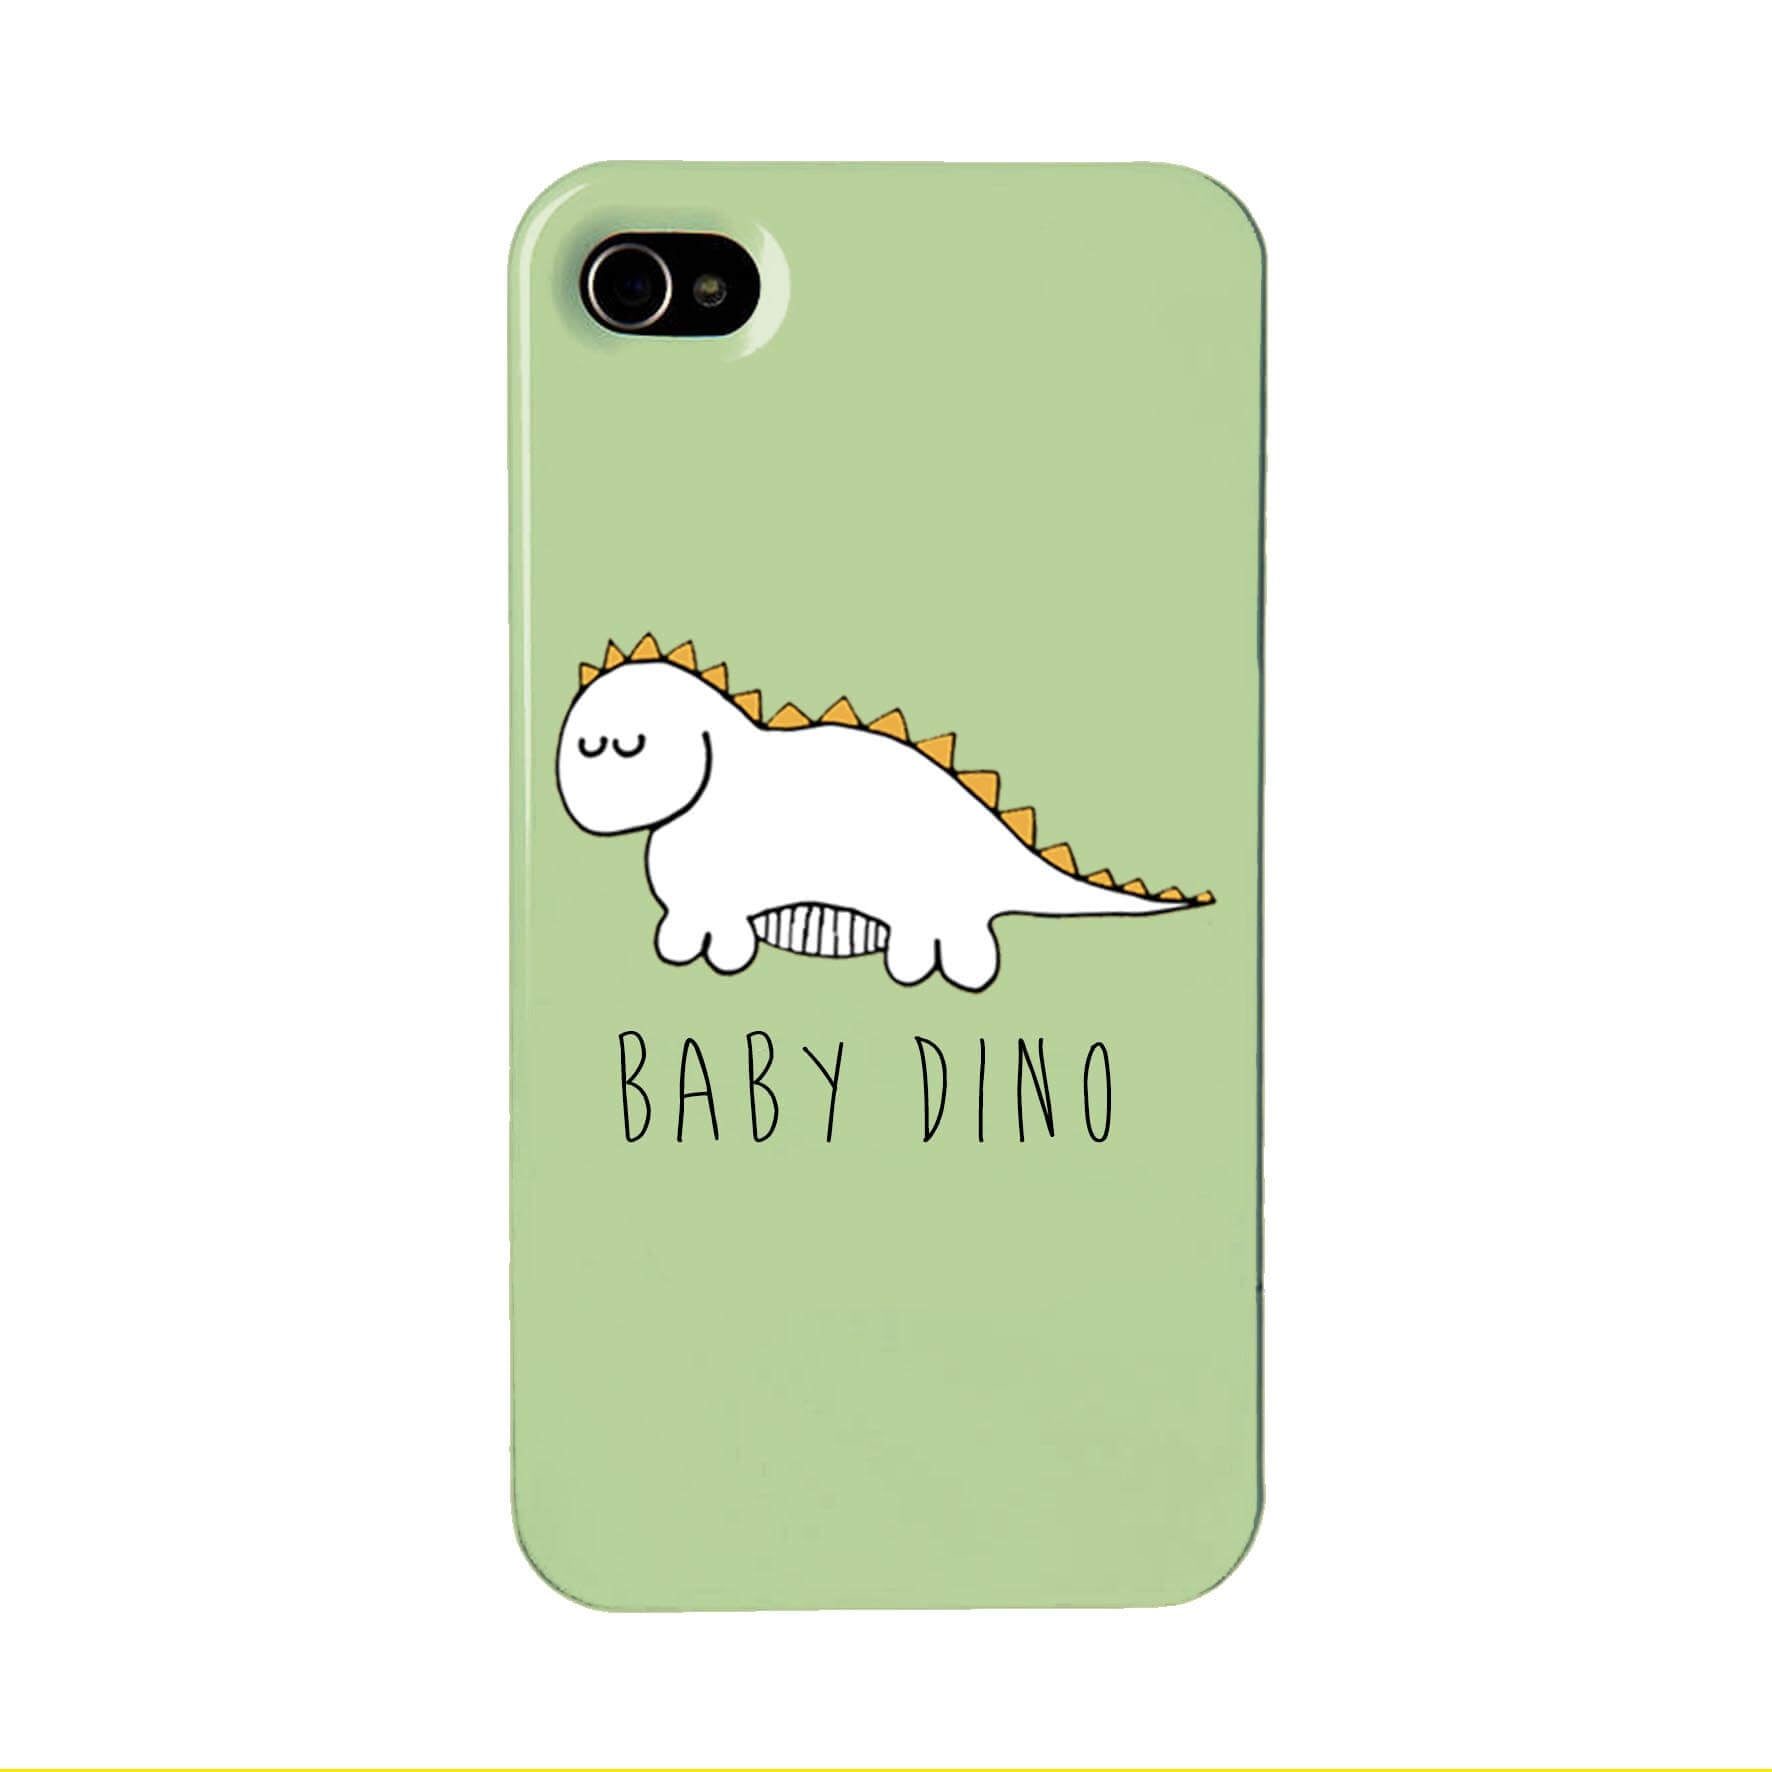 Green phone case with an illustration of a baby dinosaur